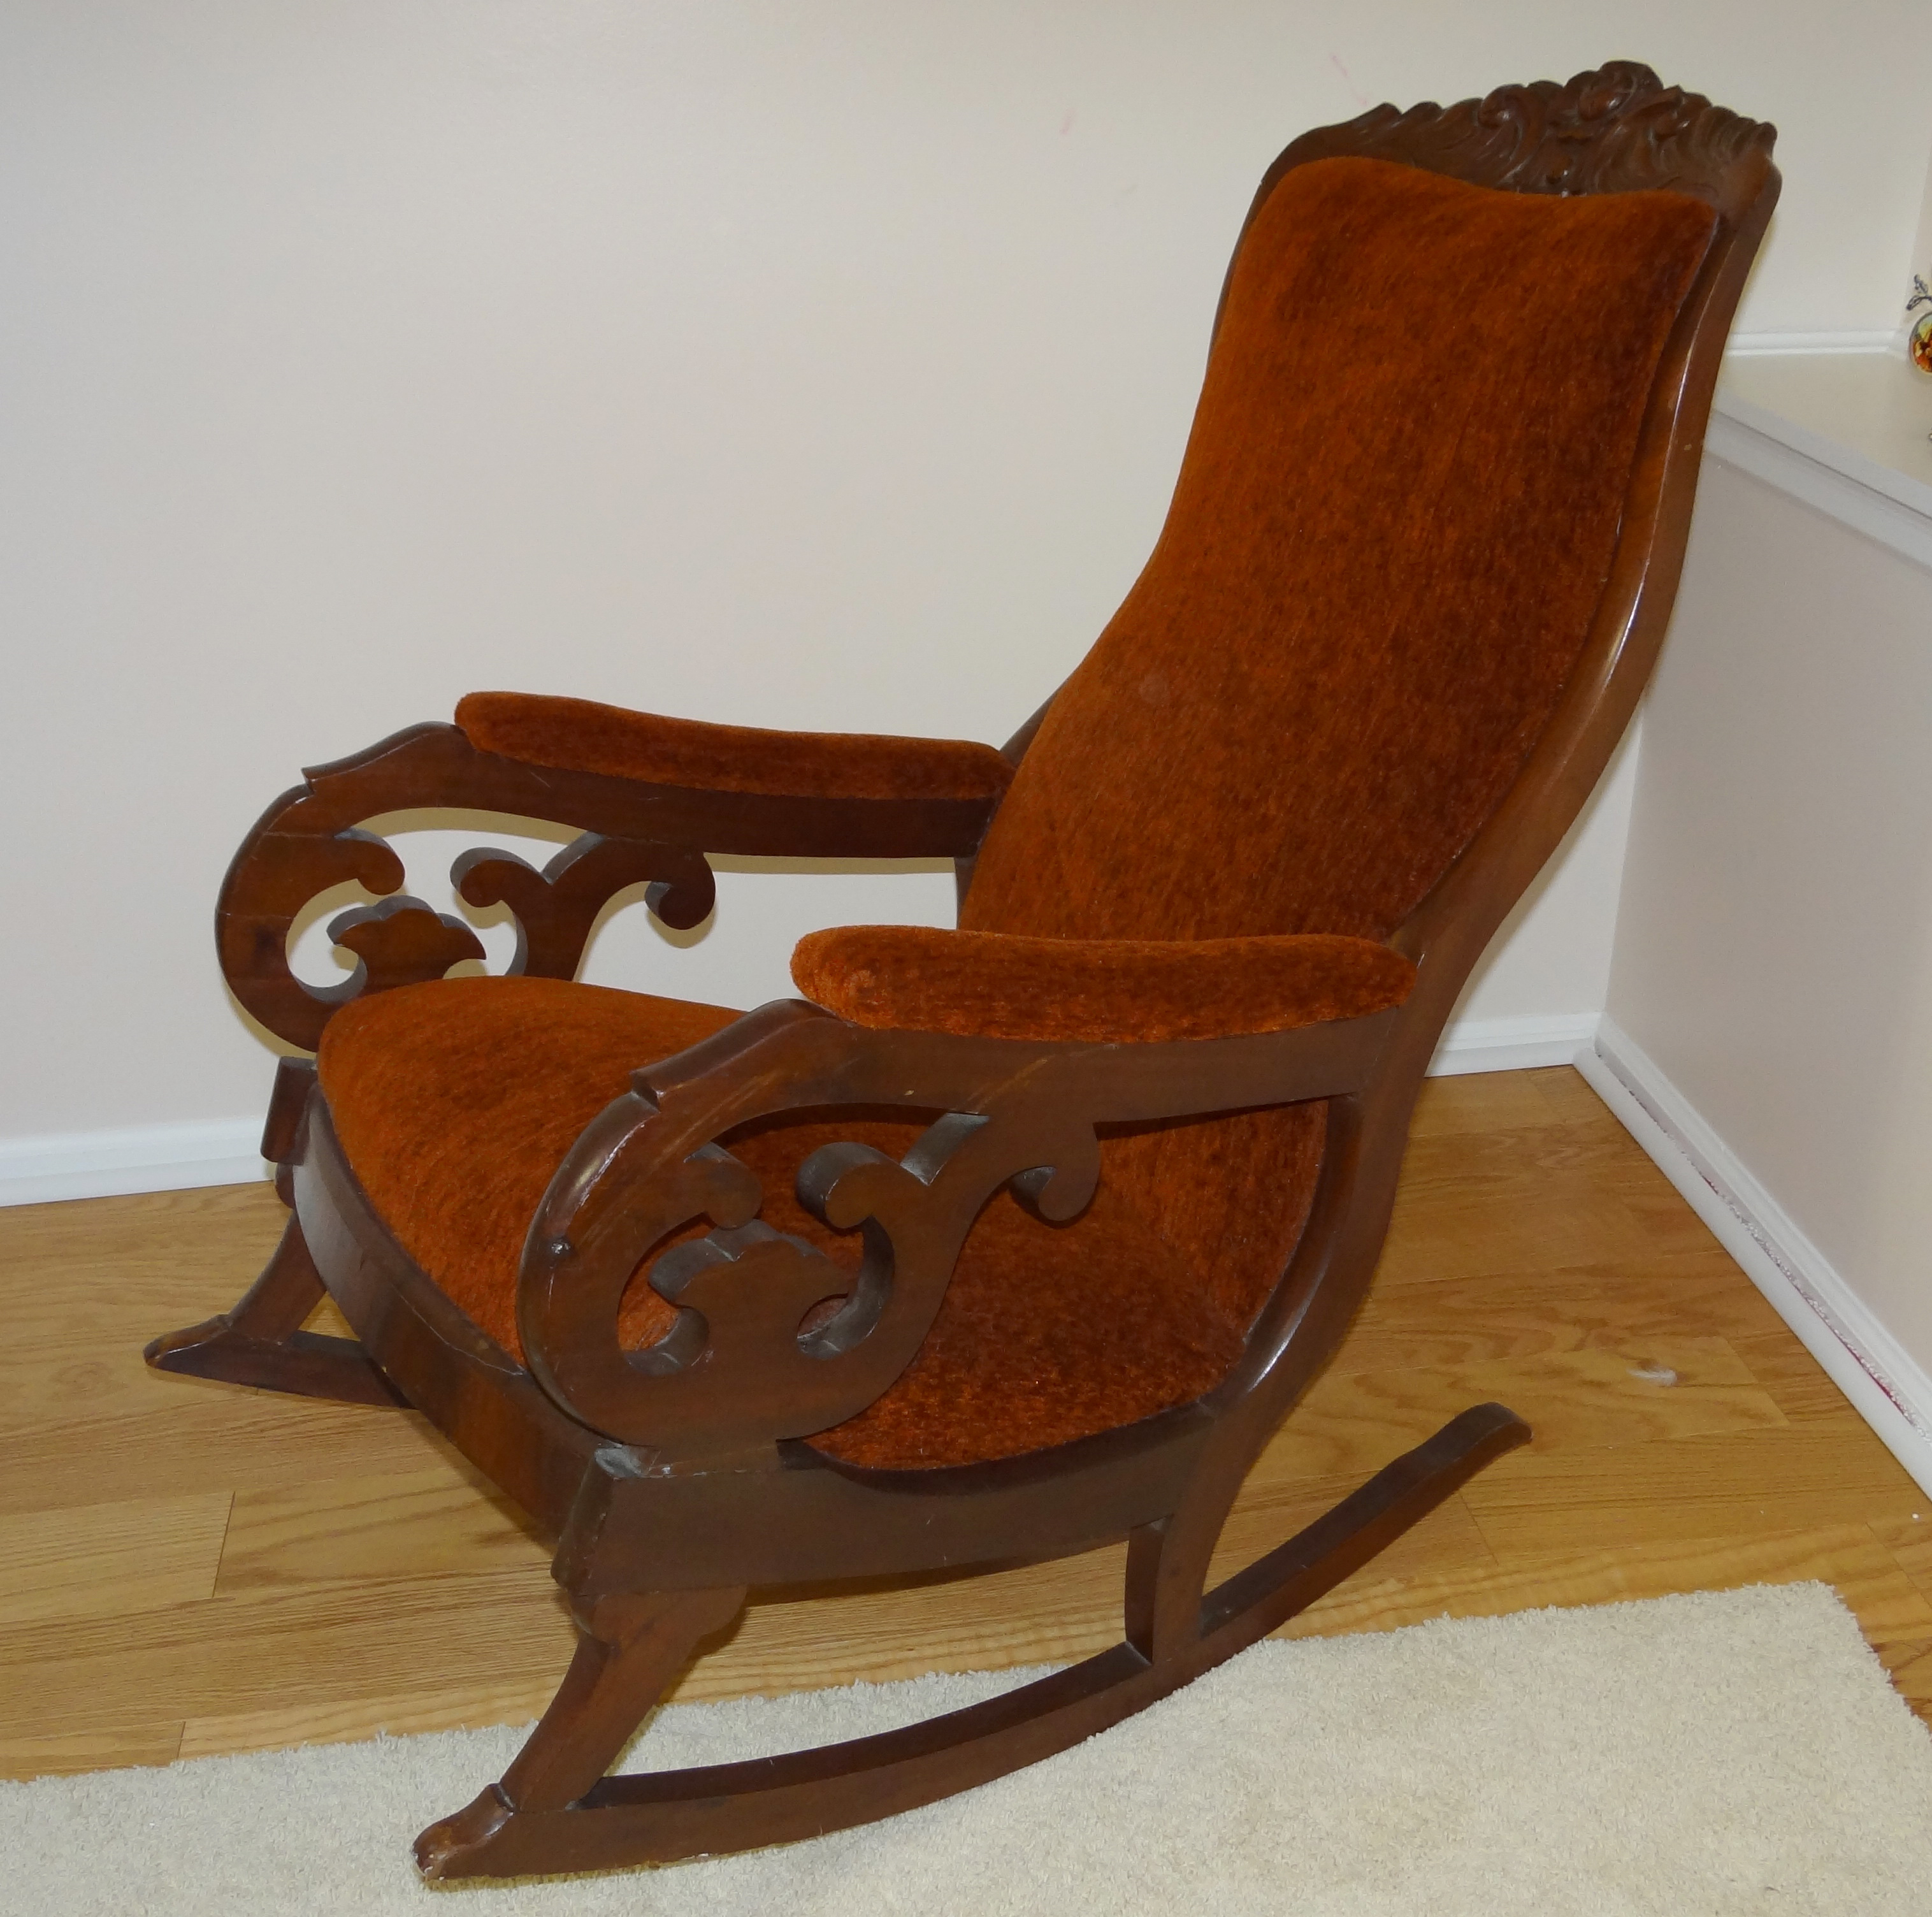 Enjoyable Antique Upholstered Rocking Chair Sell And Buy On Ebay Beatyapartments Chair Design Images Beatyapartmentscom